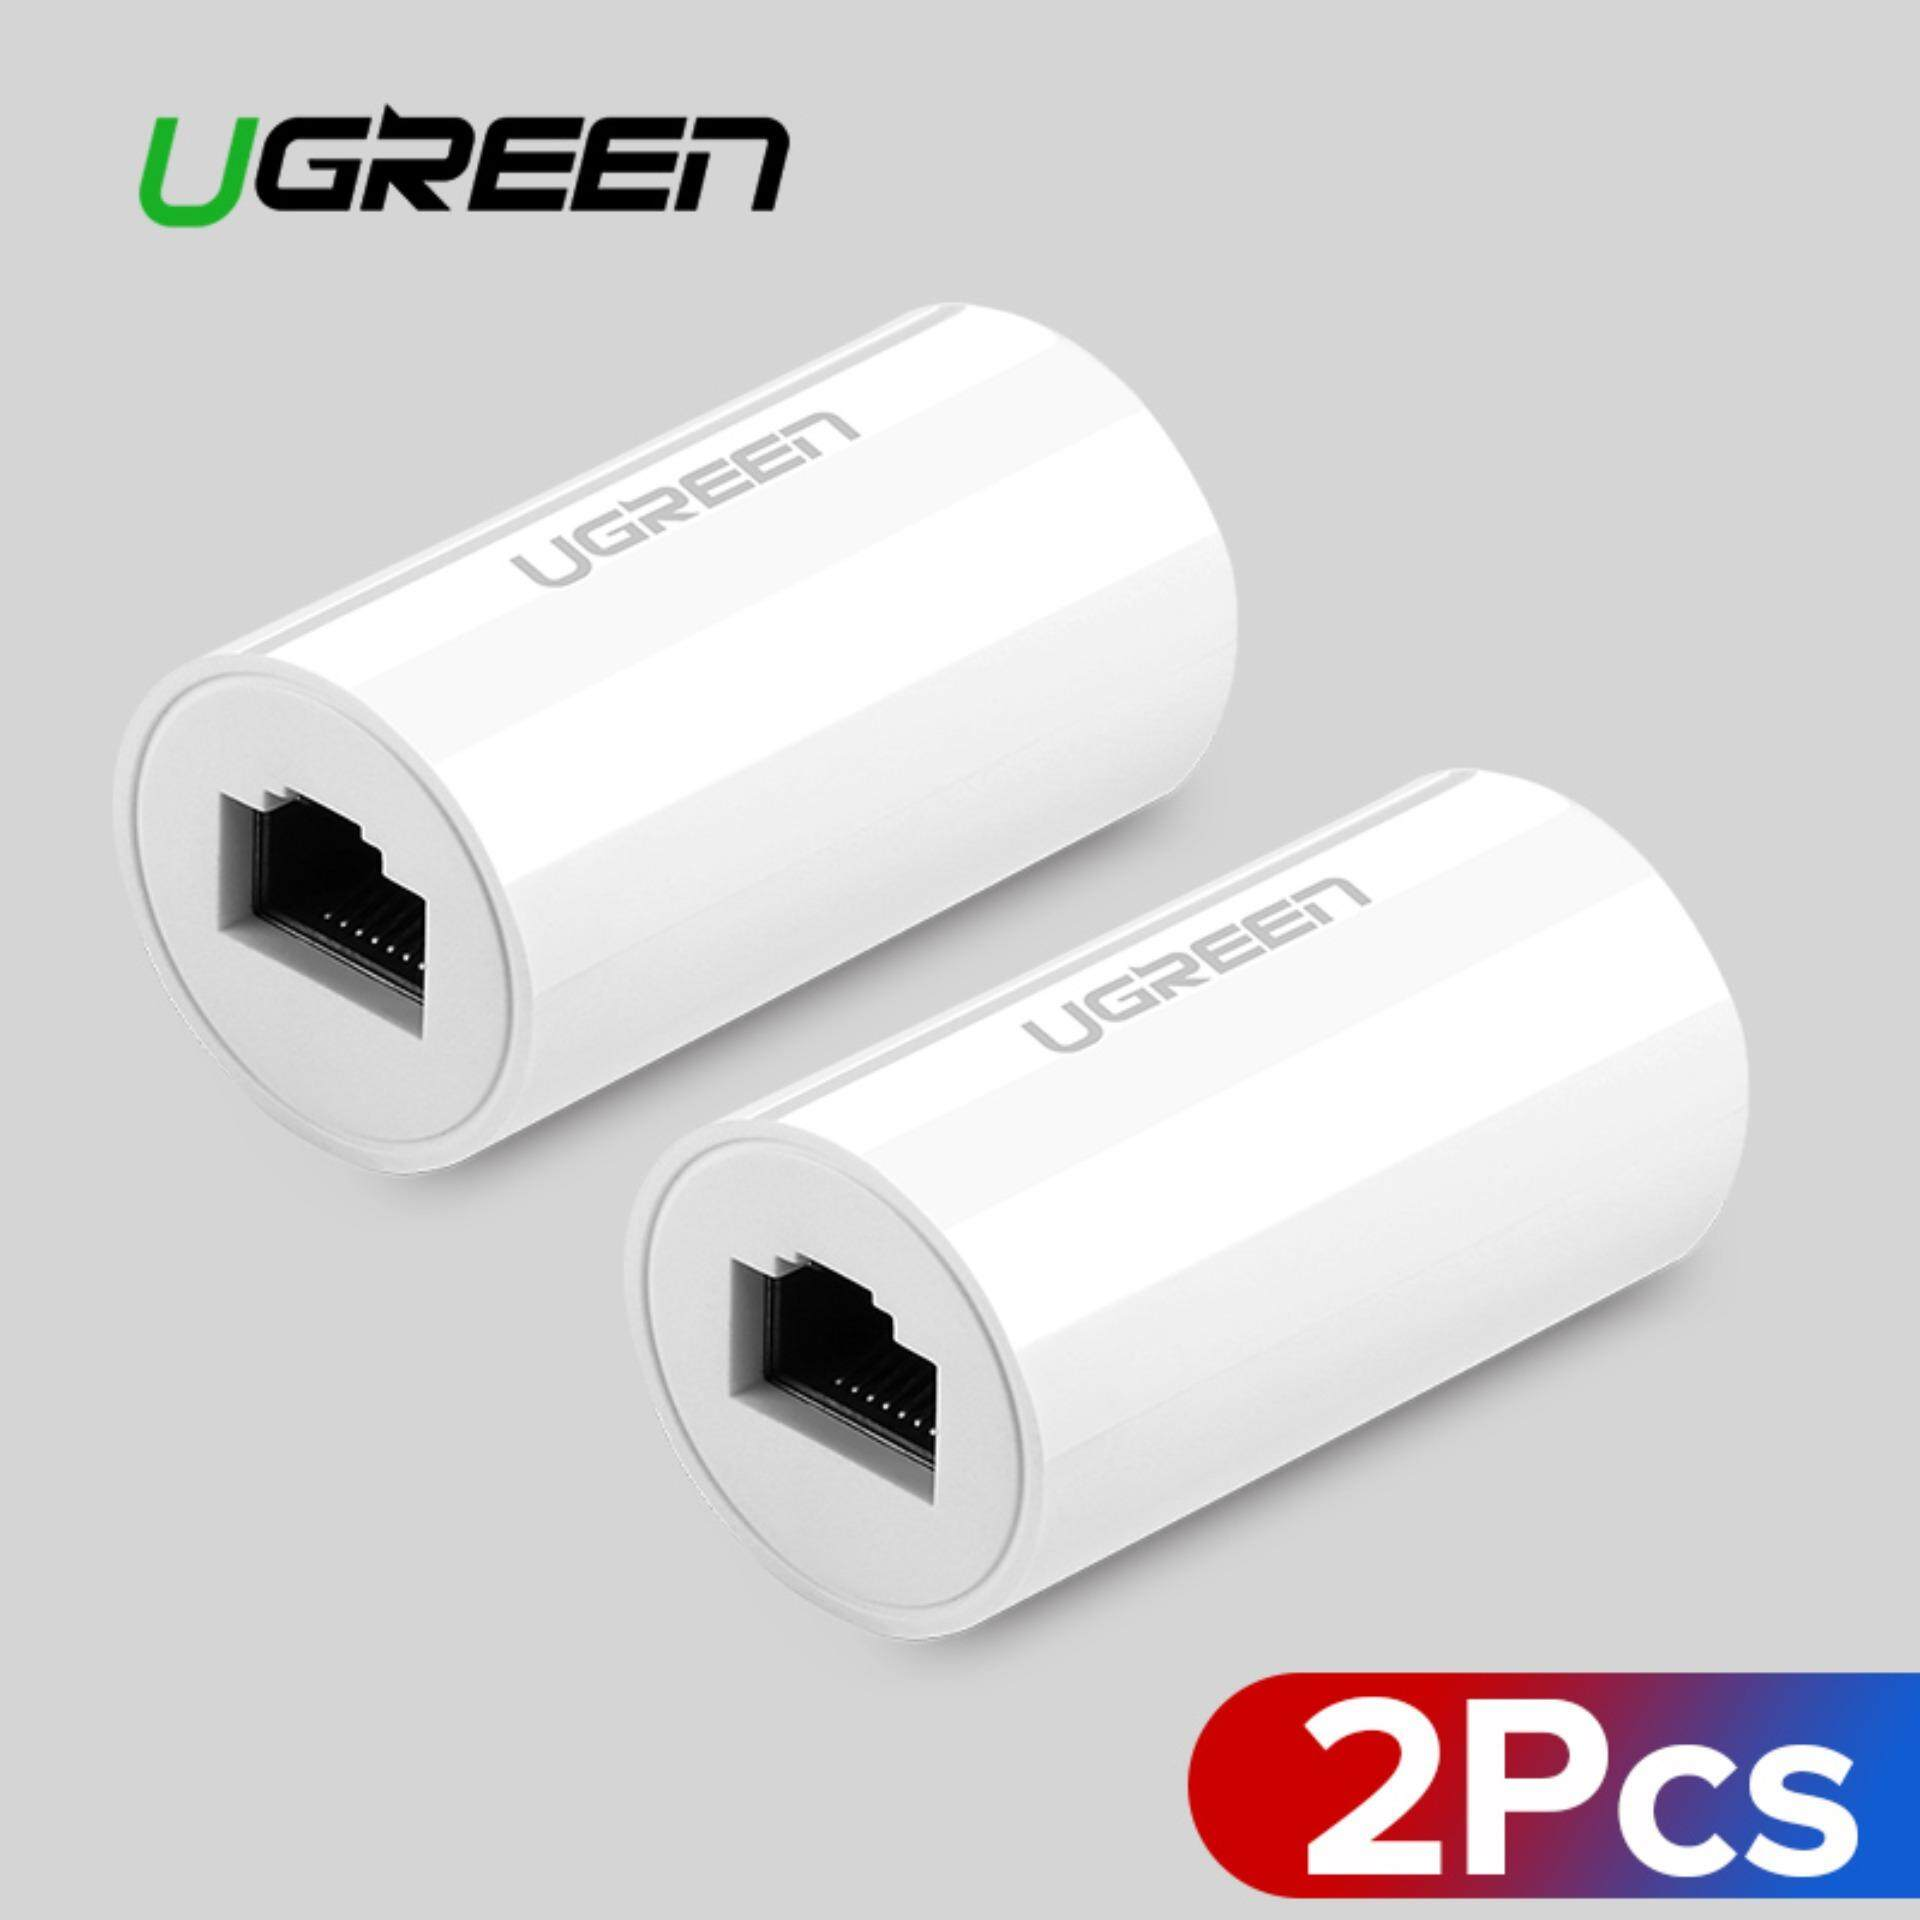 Ugreen 2pack Thunder Protection Cat6 Rj45 Network Cable Connector By Ugreen Flagship Store.